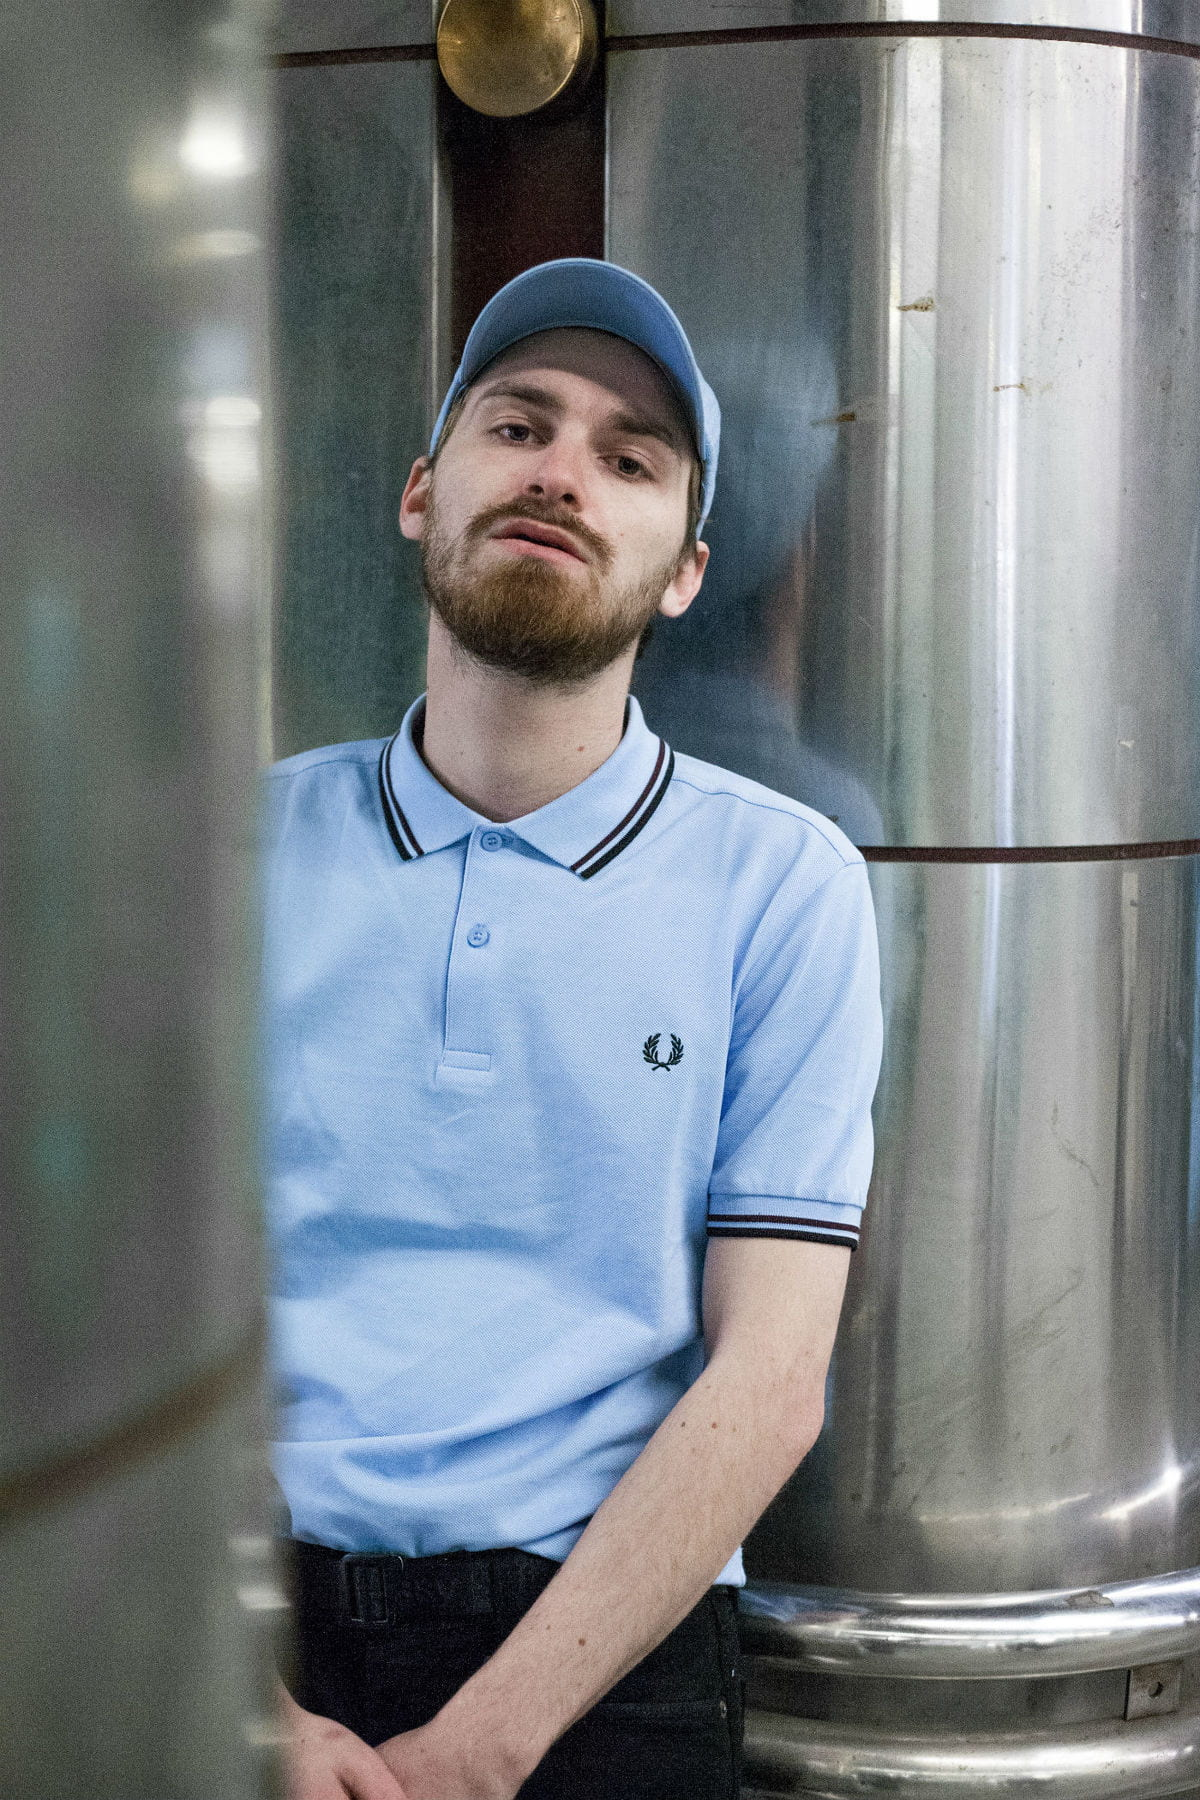 Fred Perry | From sportswear to streetwear